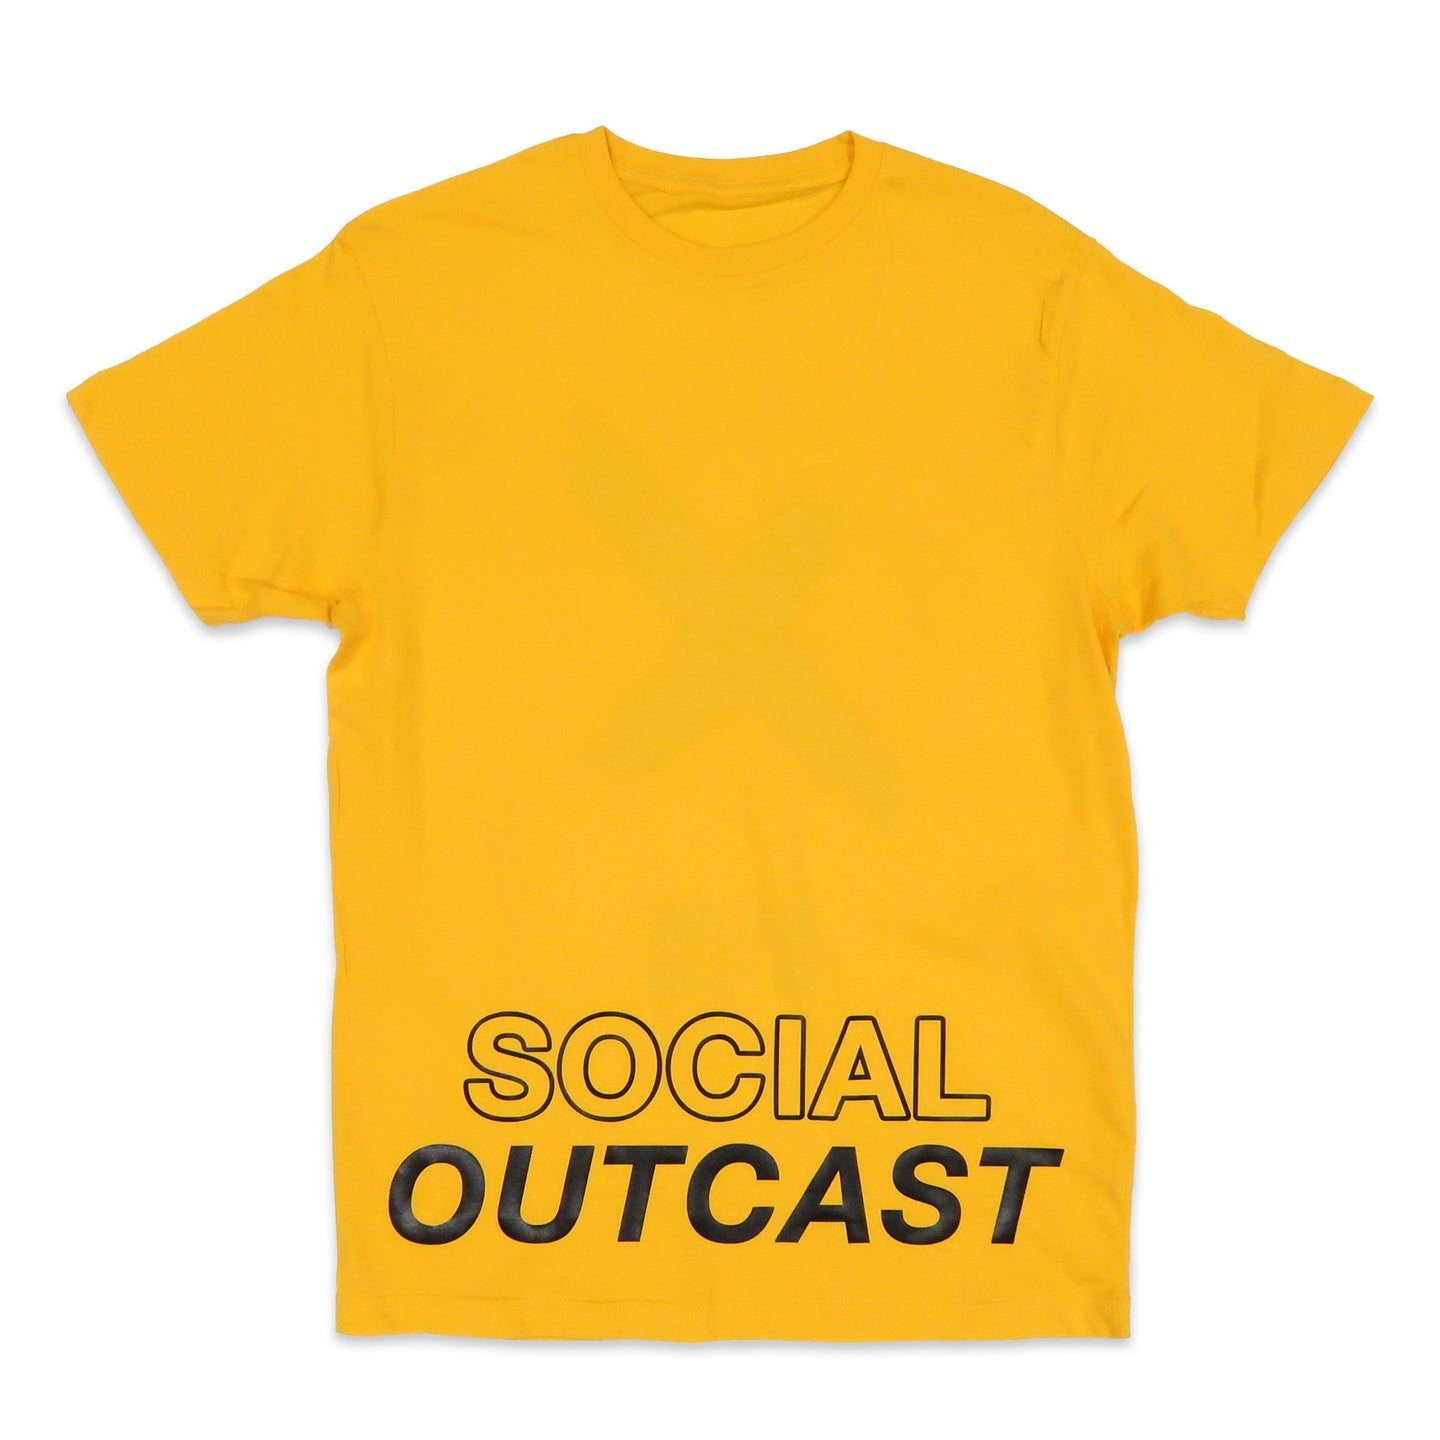 Social Outcast V2 Tee in Yellow and Black